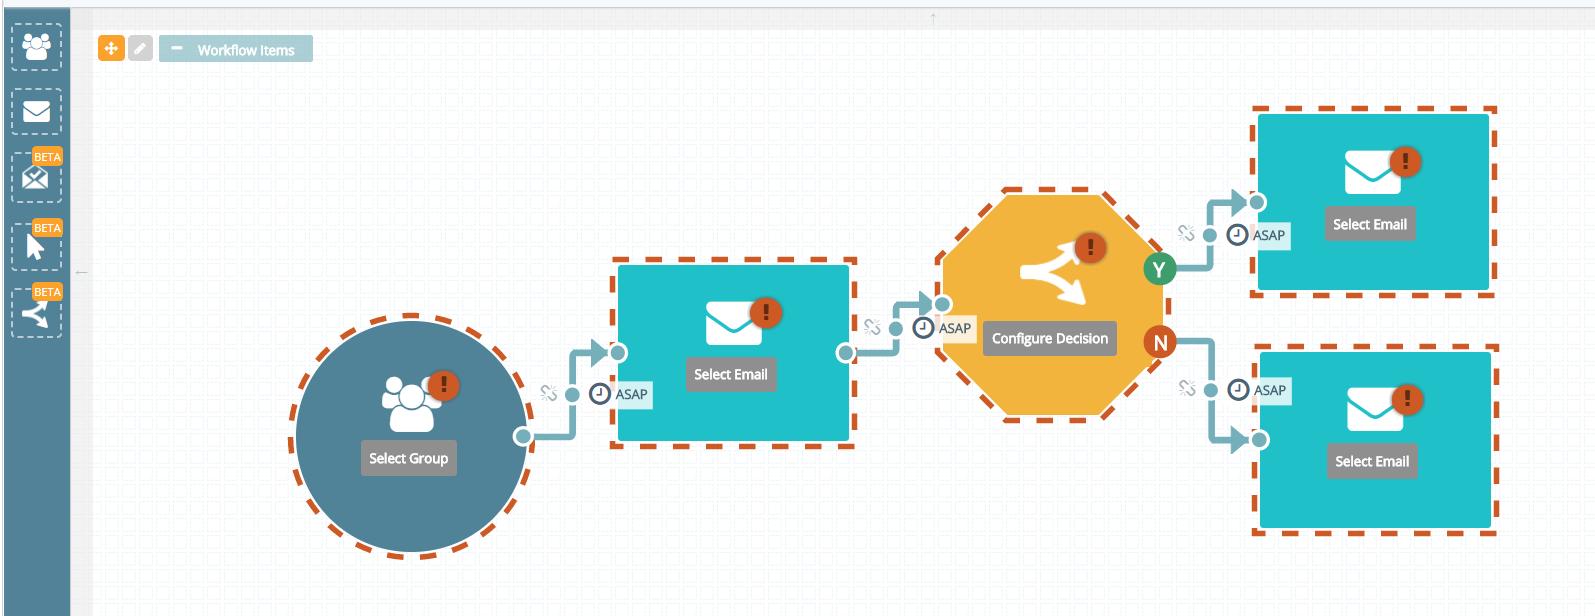 Create complex, multi-touch email campaigns using the drag and drop workflow builder